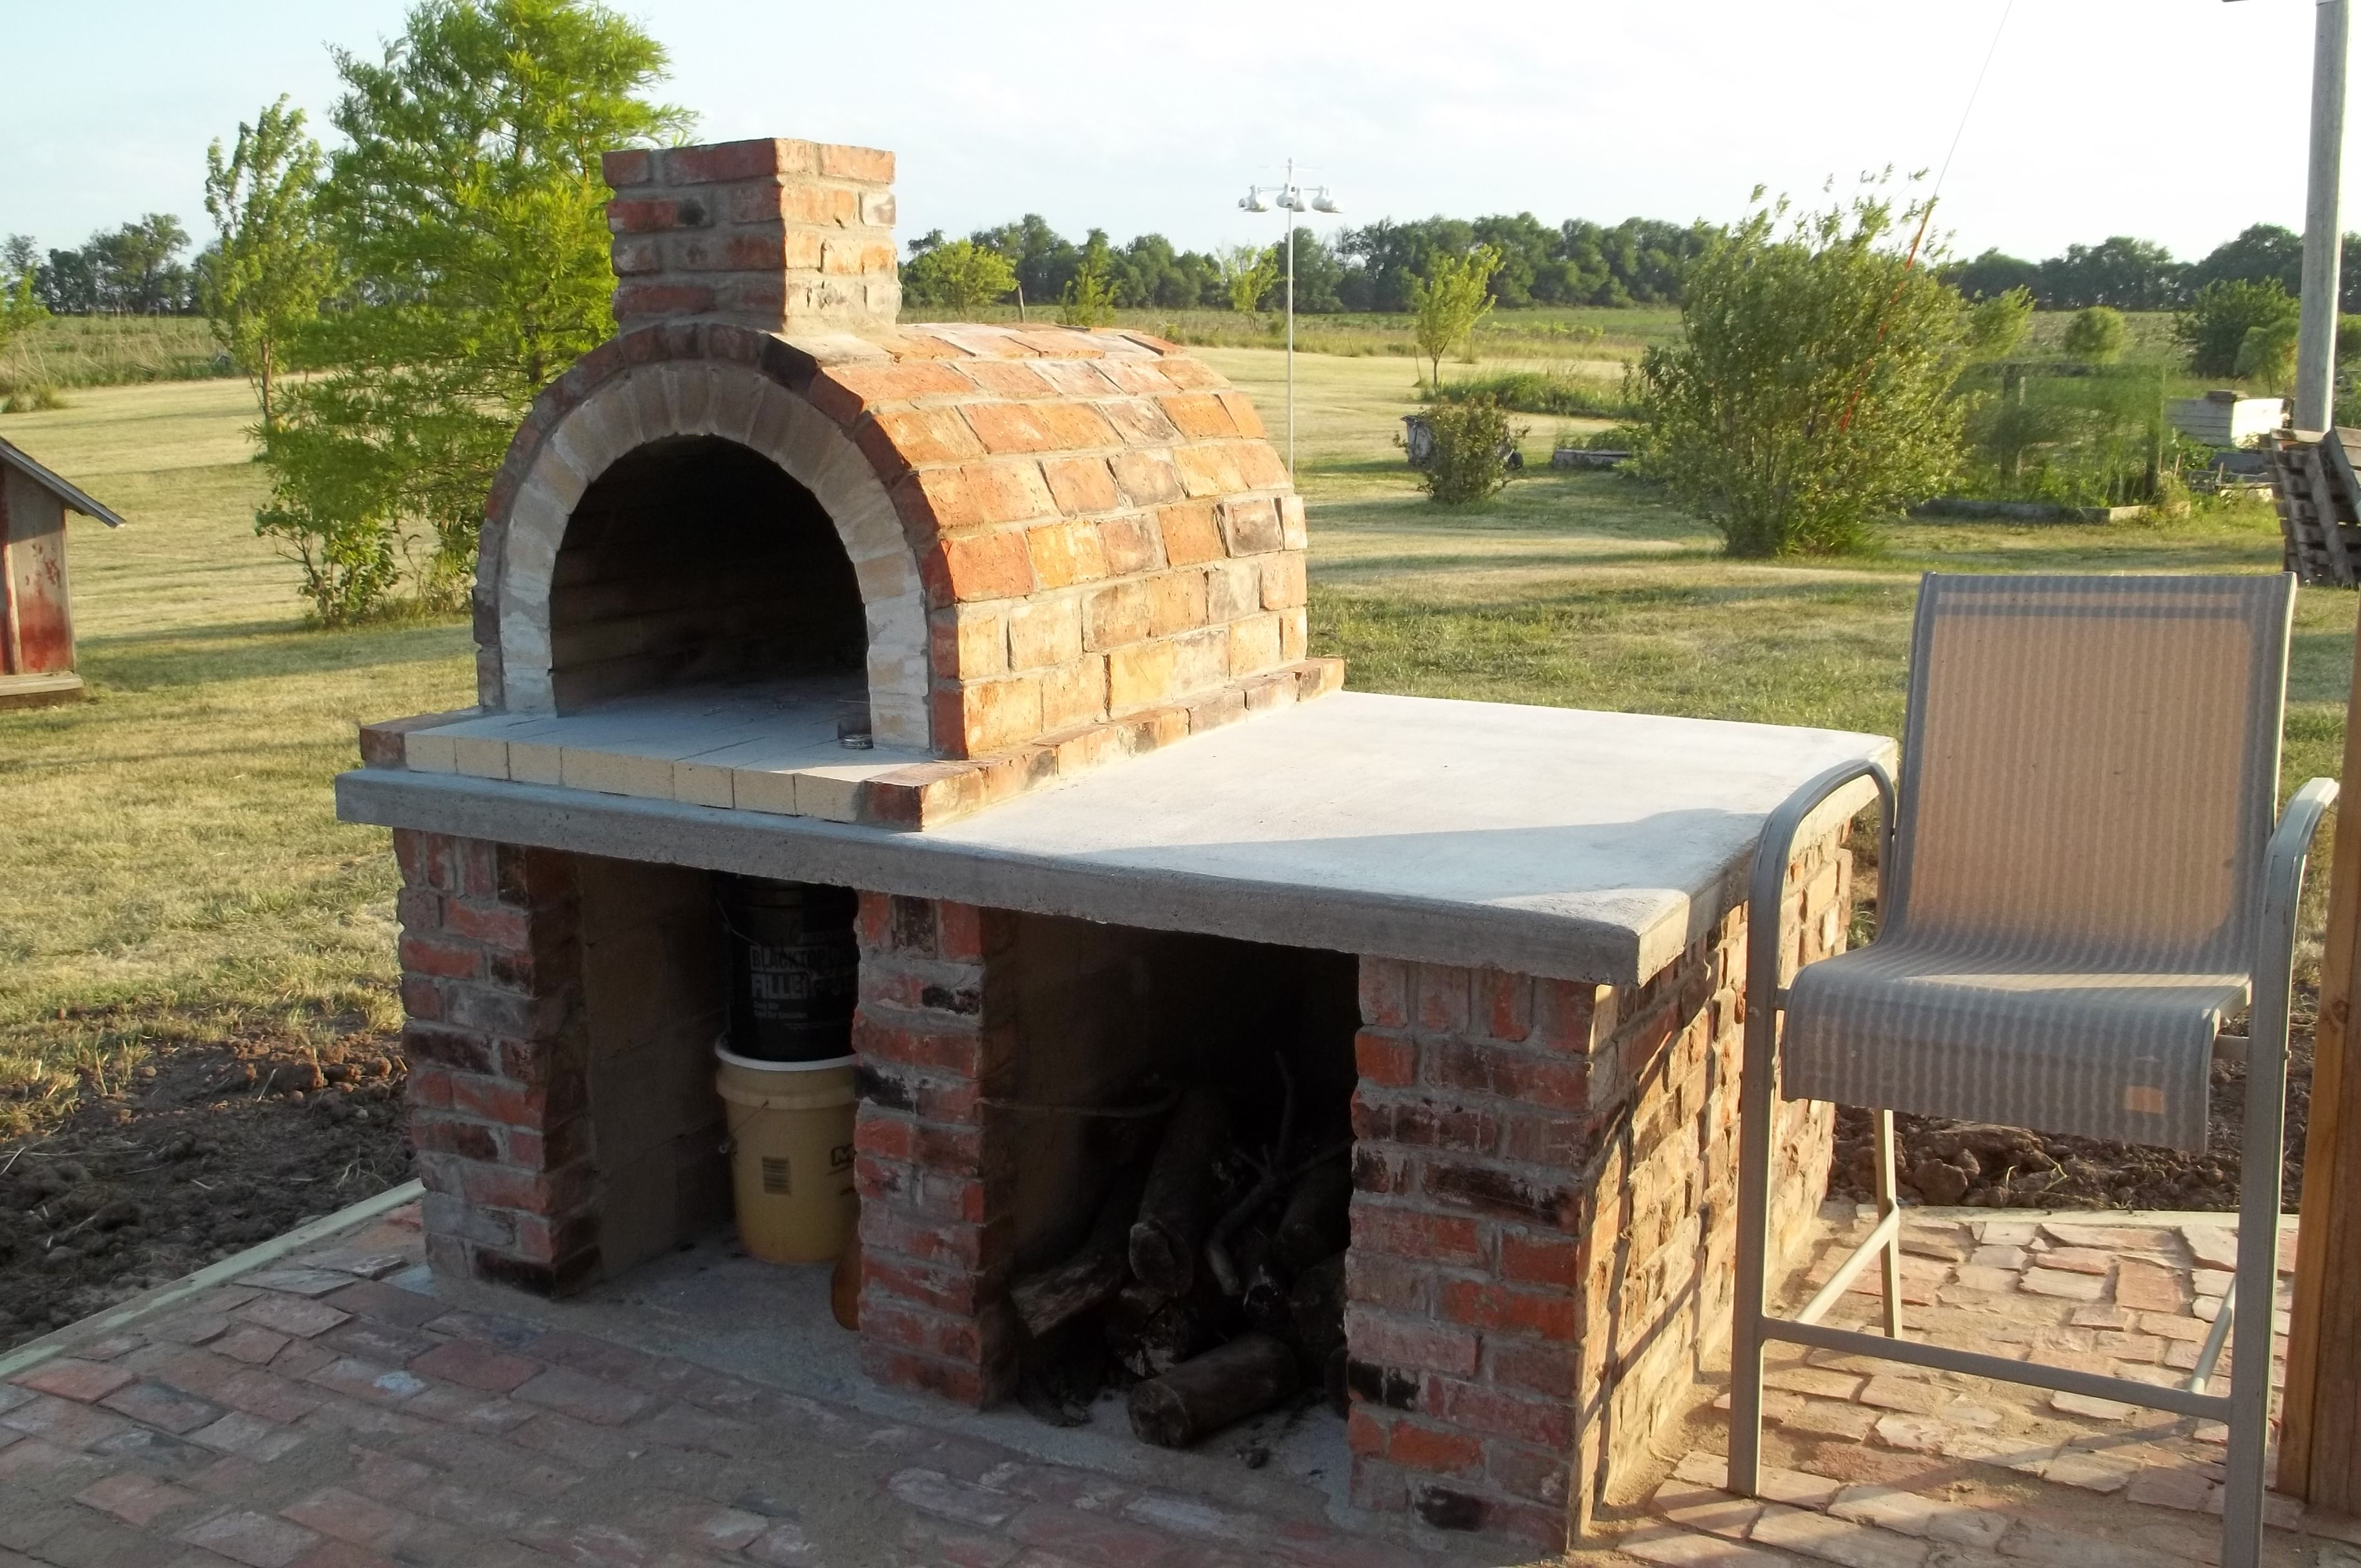 The Dearborn Family Wood Fired Brick Pizza Oven In Iowa   The .